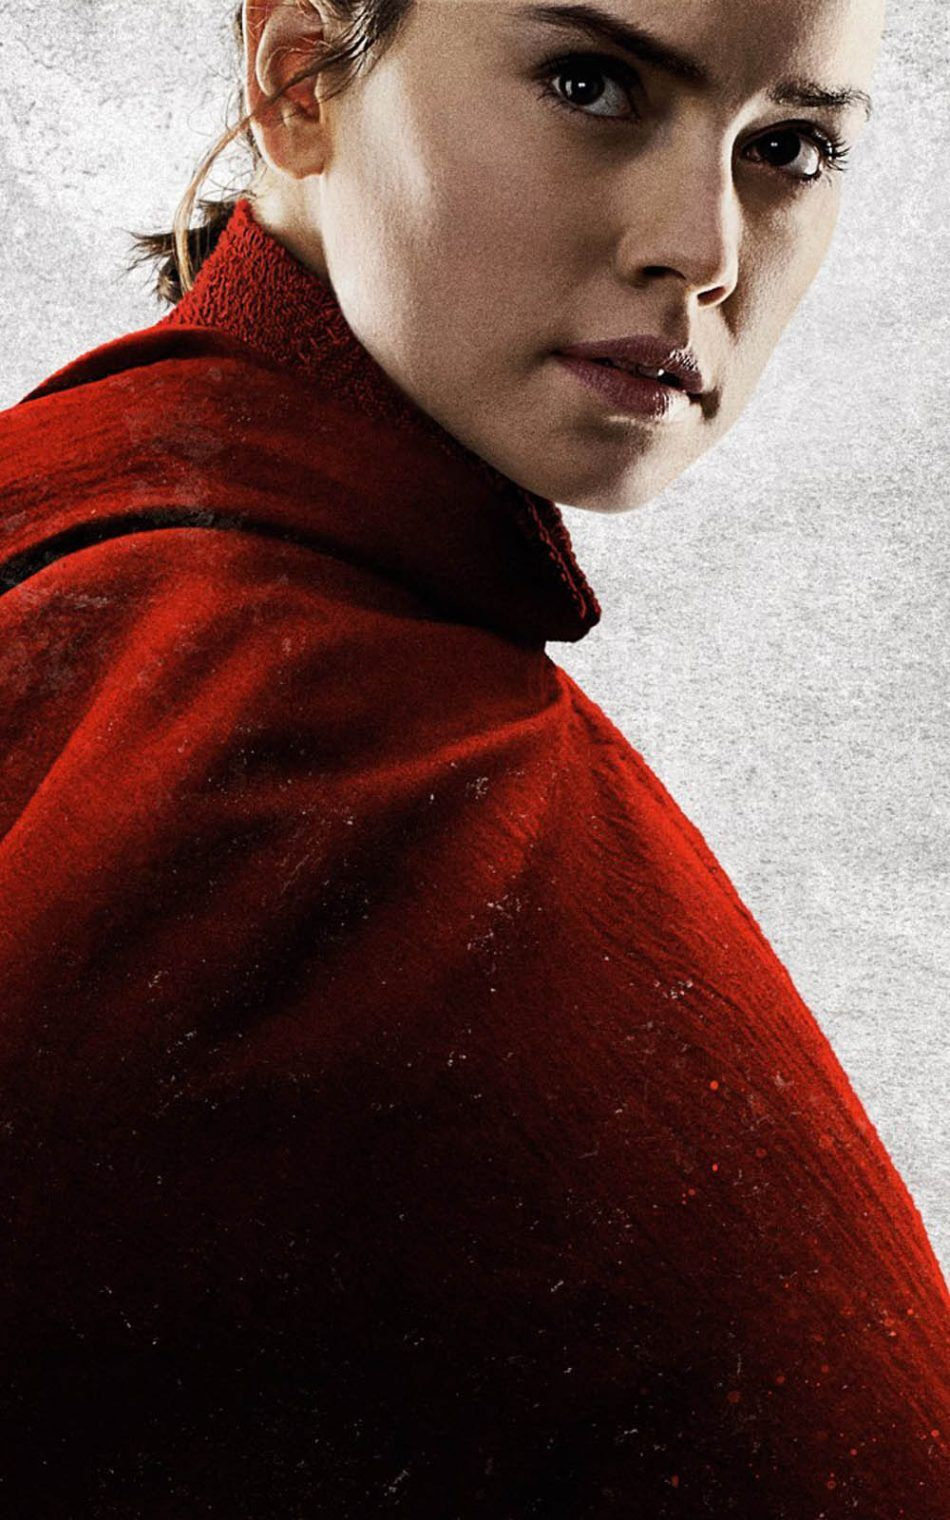 950x1520 Rey In Star Wars The Last Jedi - Download Free 100% Pure HD Quality ...